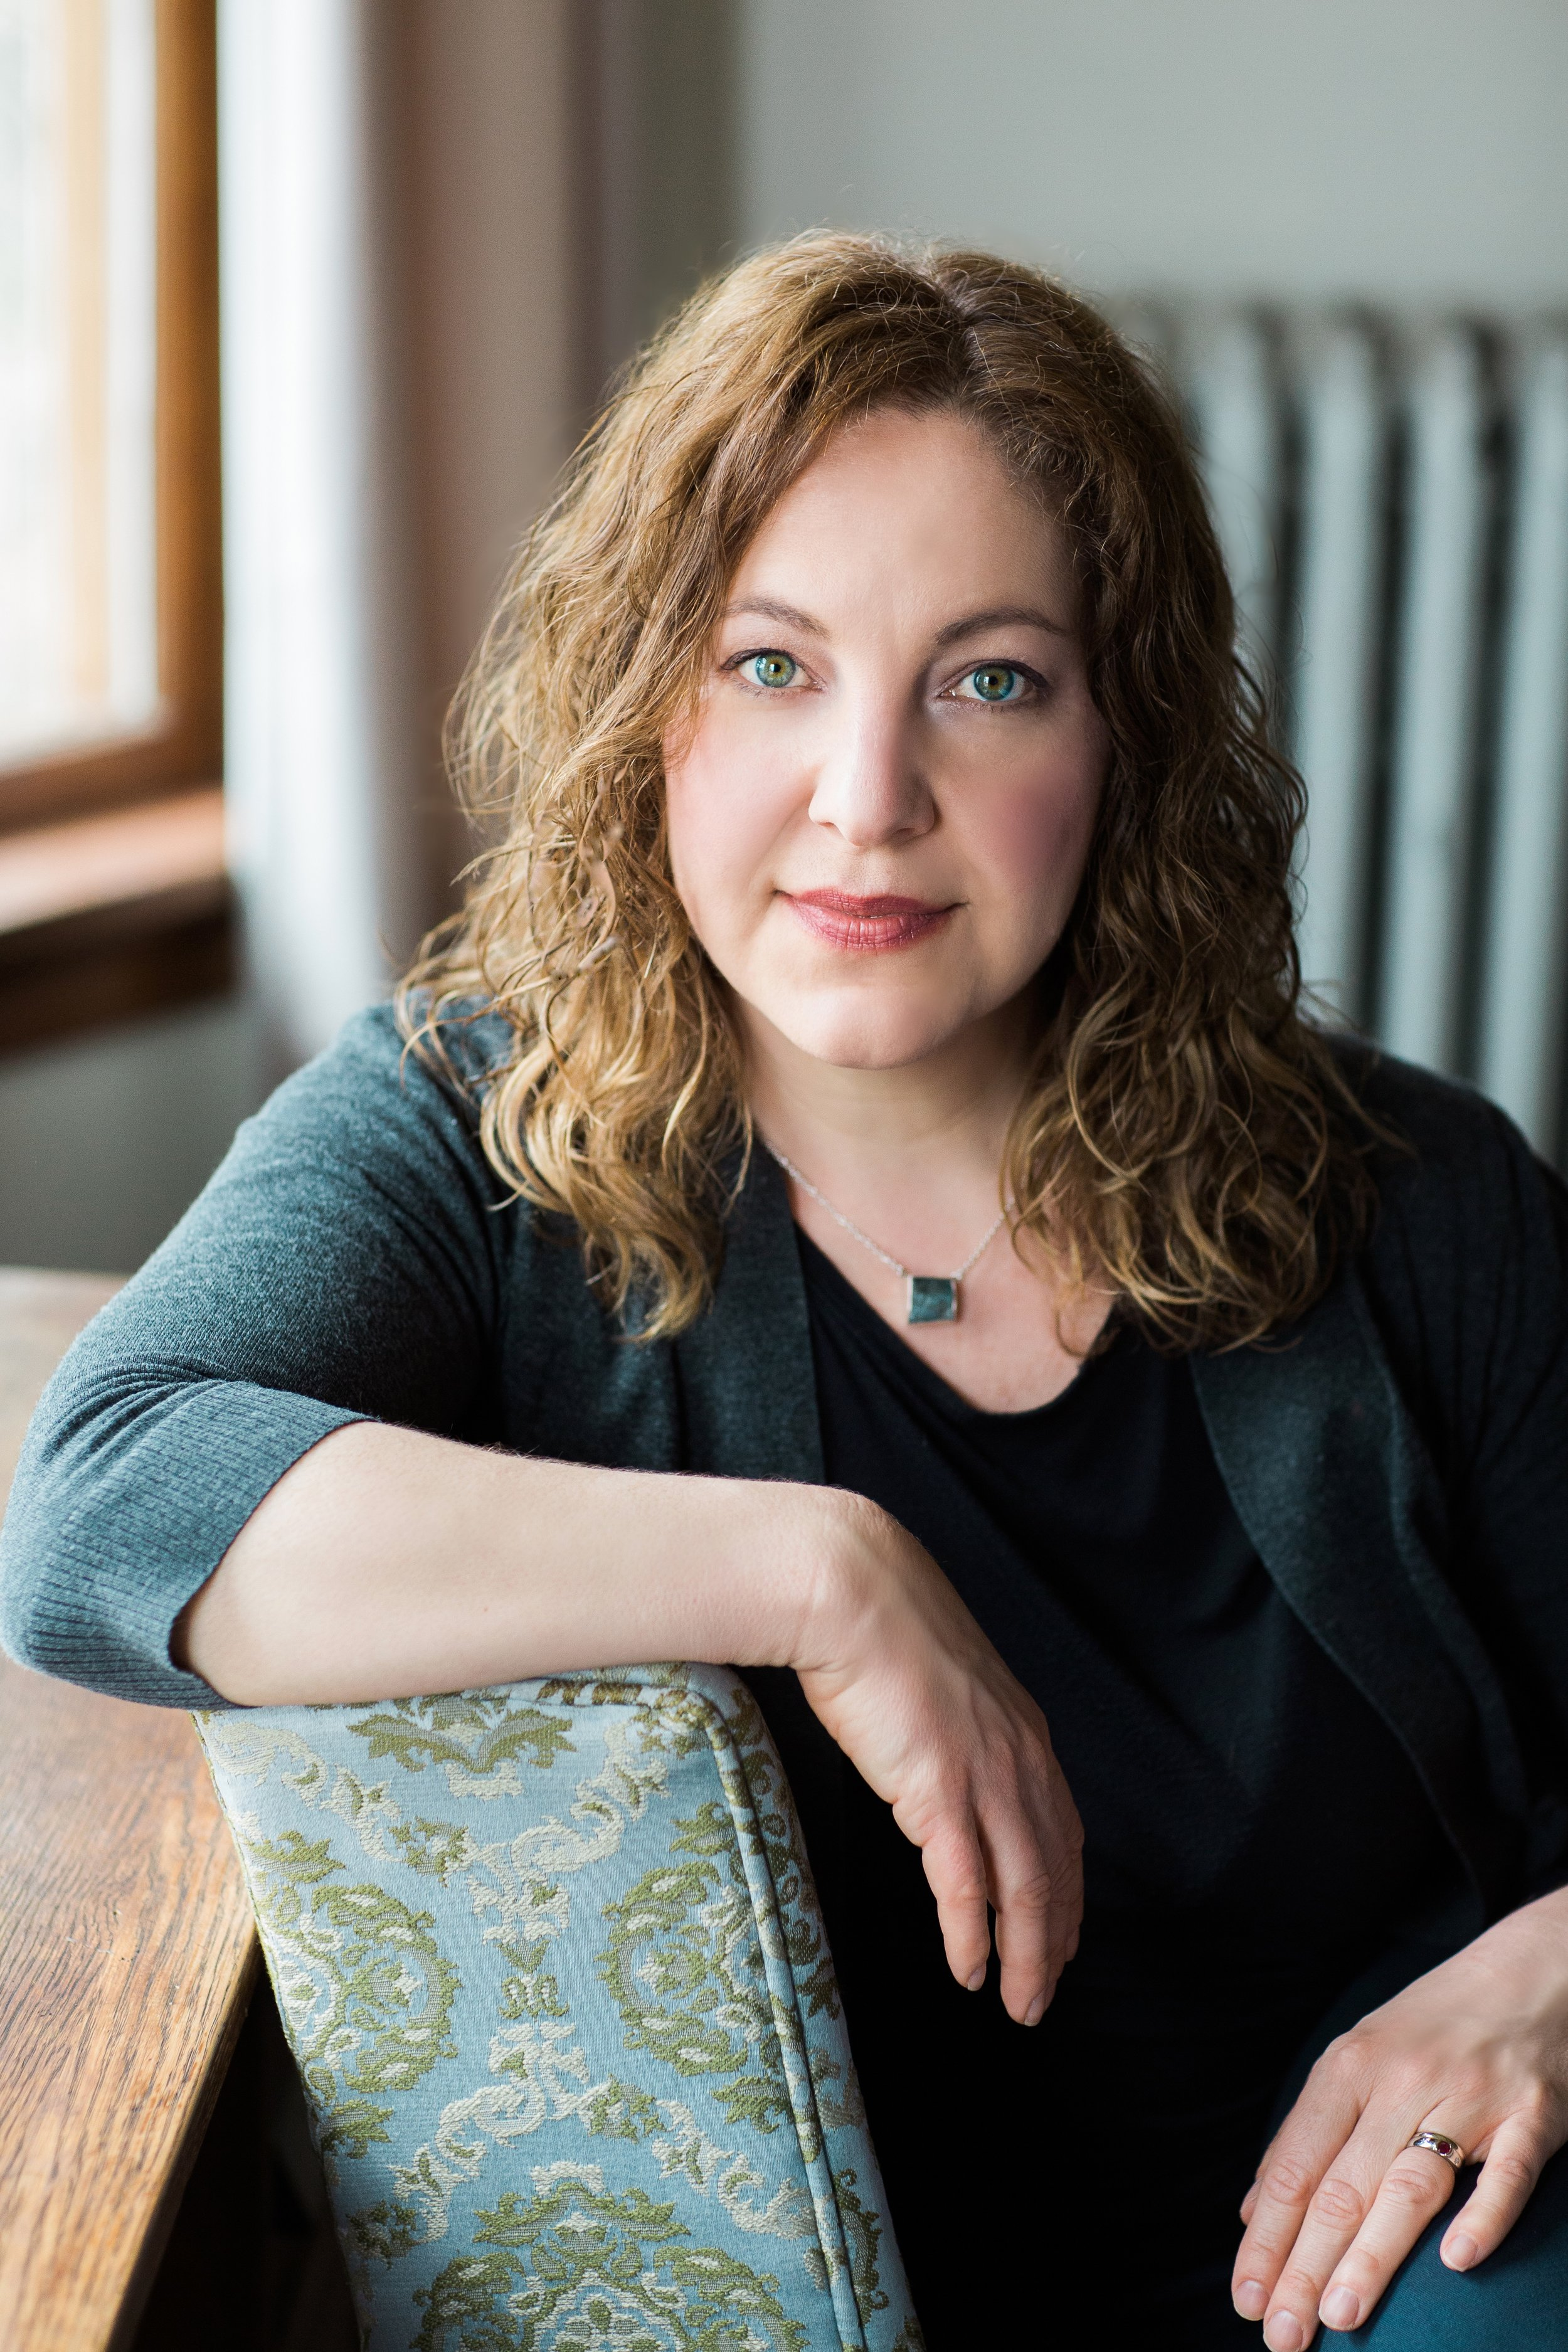 Author photo: Renee Leveille Biebly